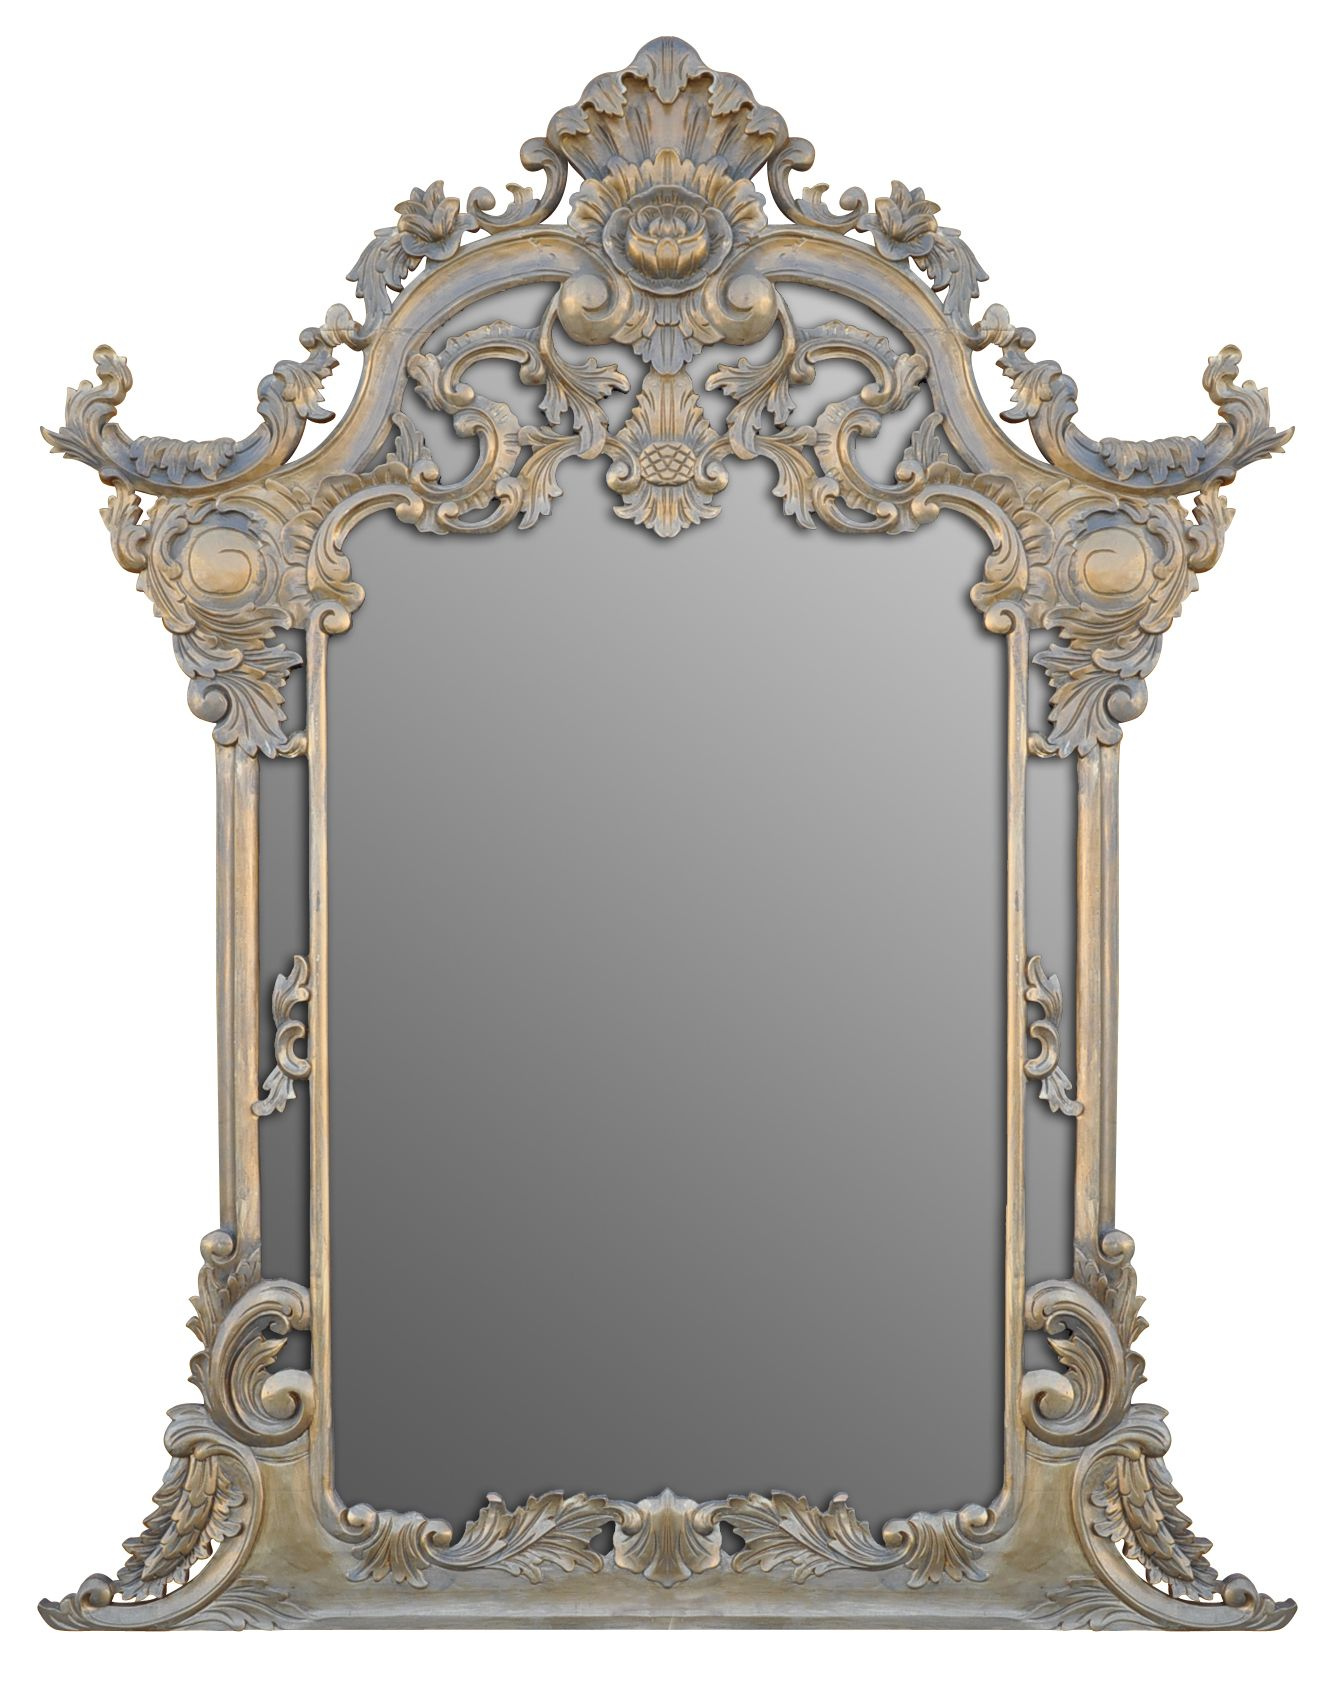 Antique frame   mirrors and frames   Pinterest   Frame mirrors ...